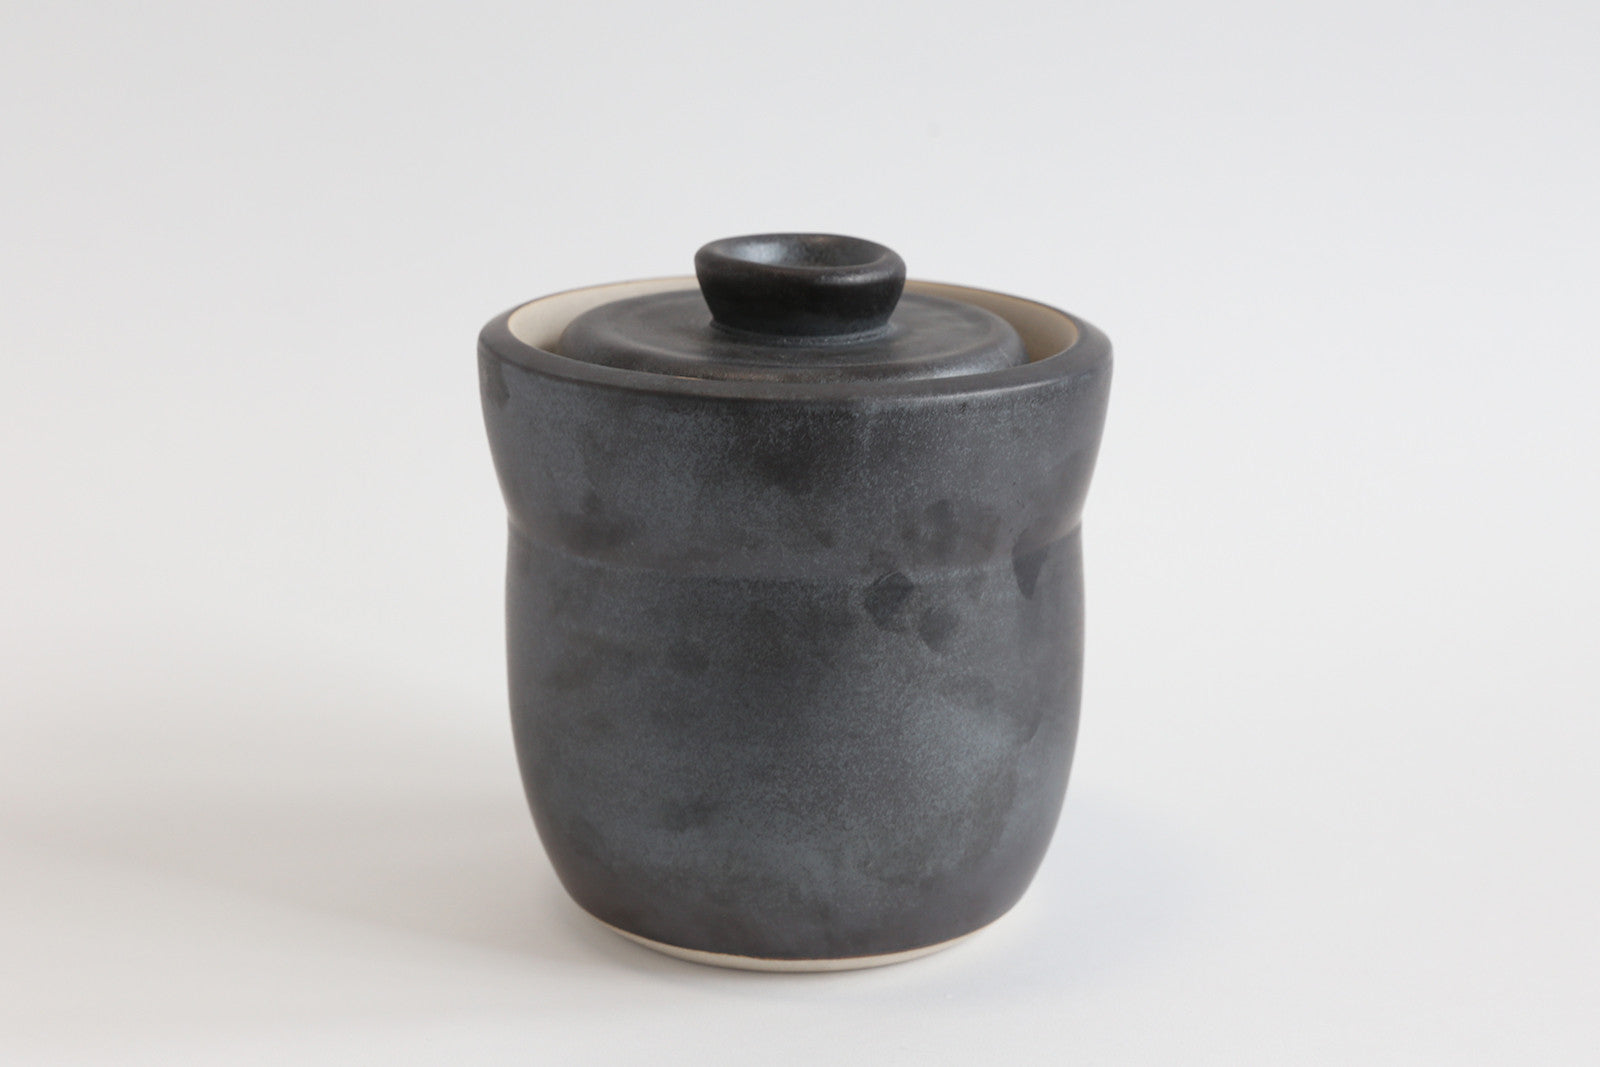 Small Black Fermentation Jar